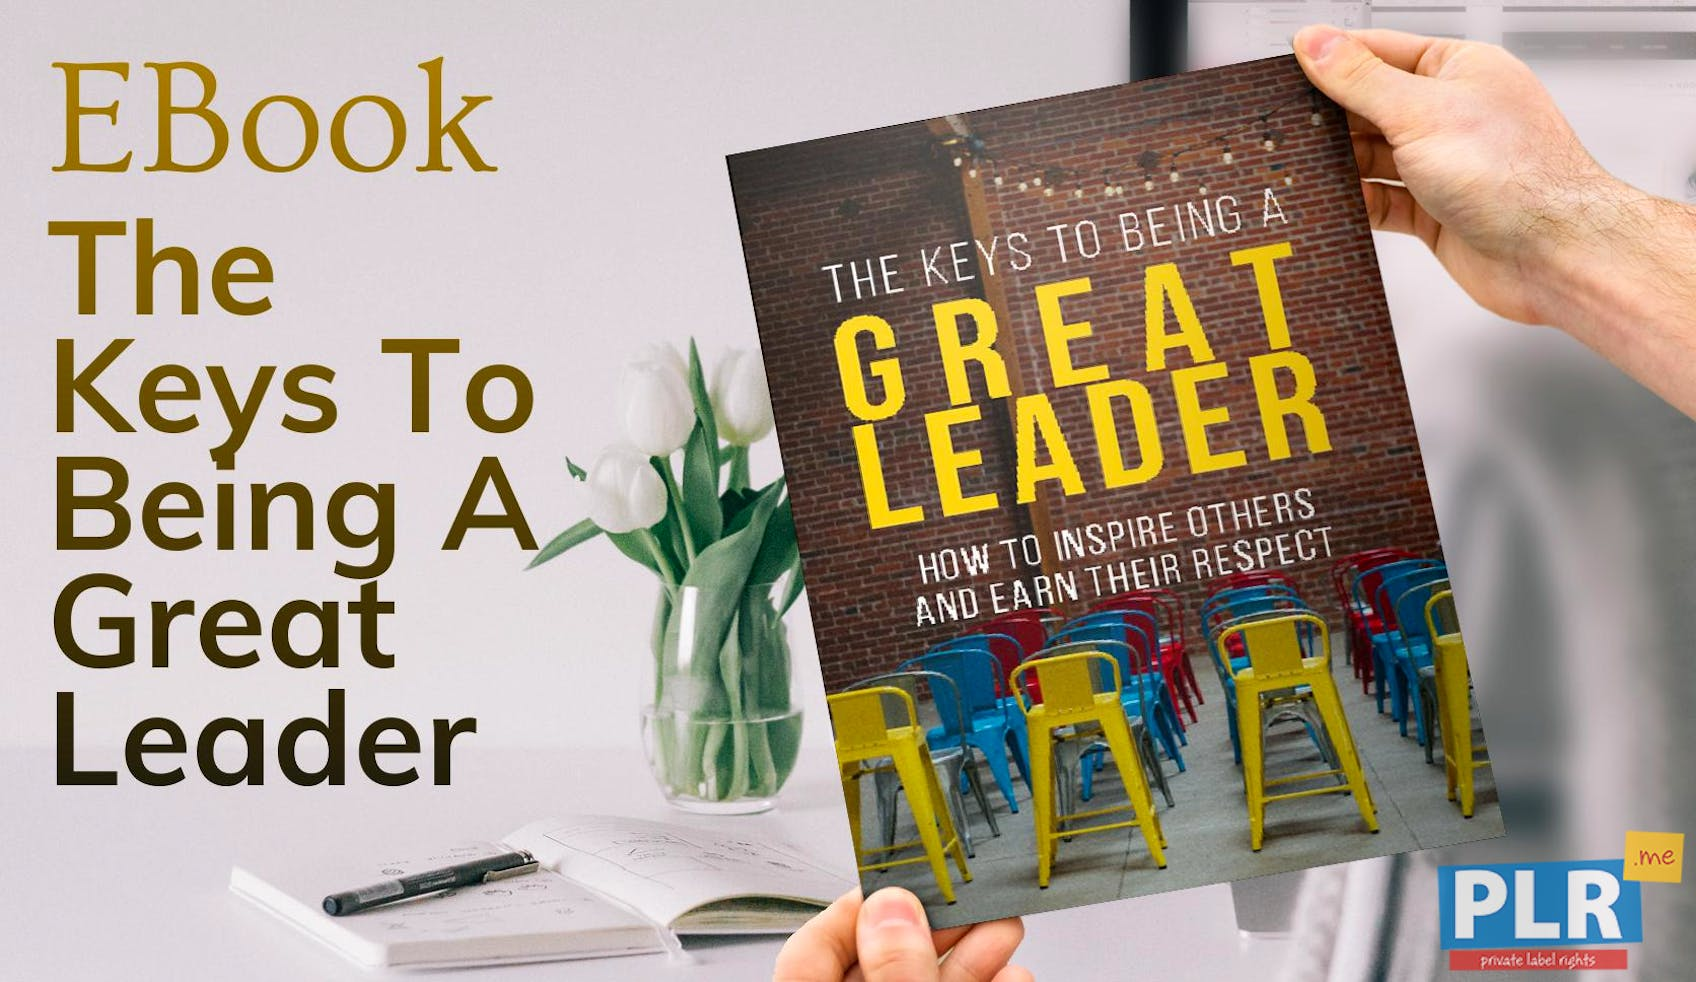 The Keys To Being A Great Leader